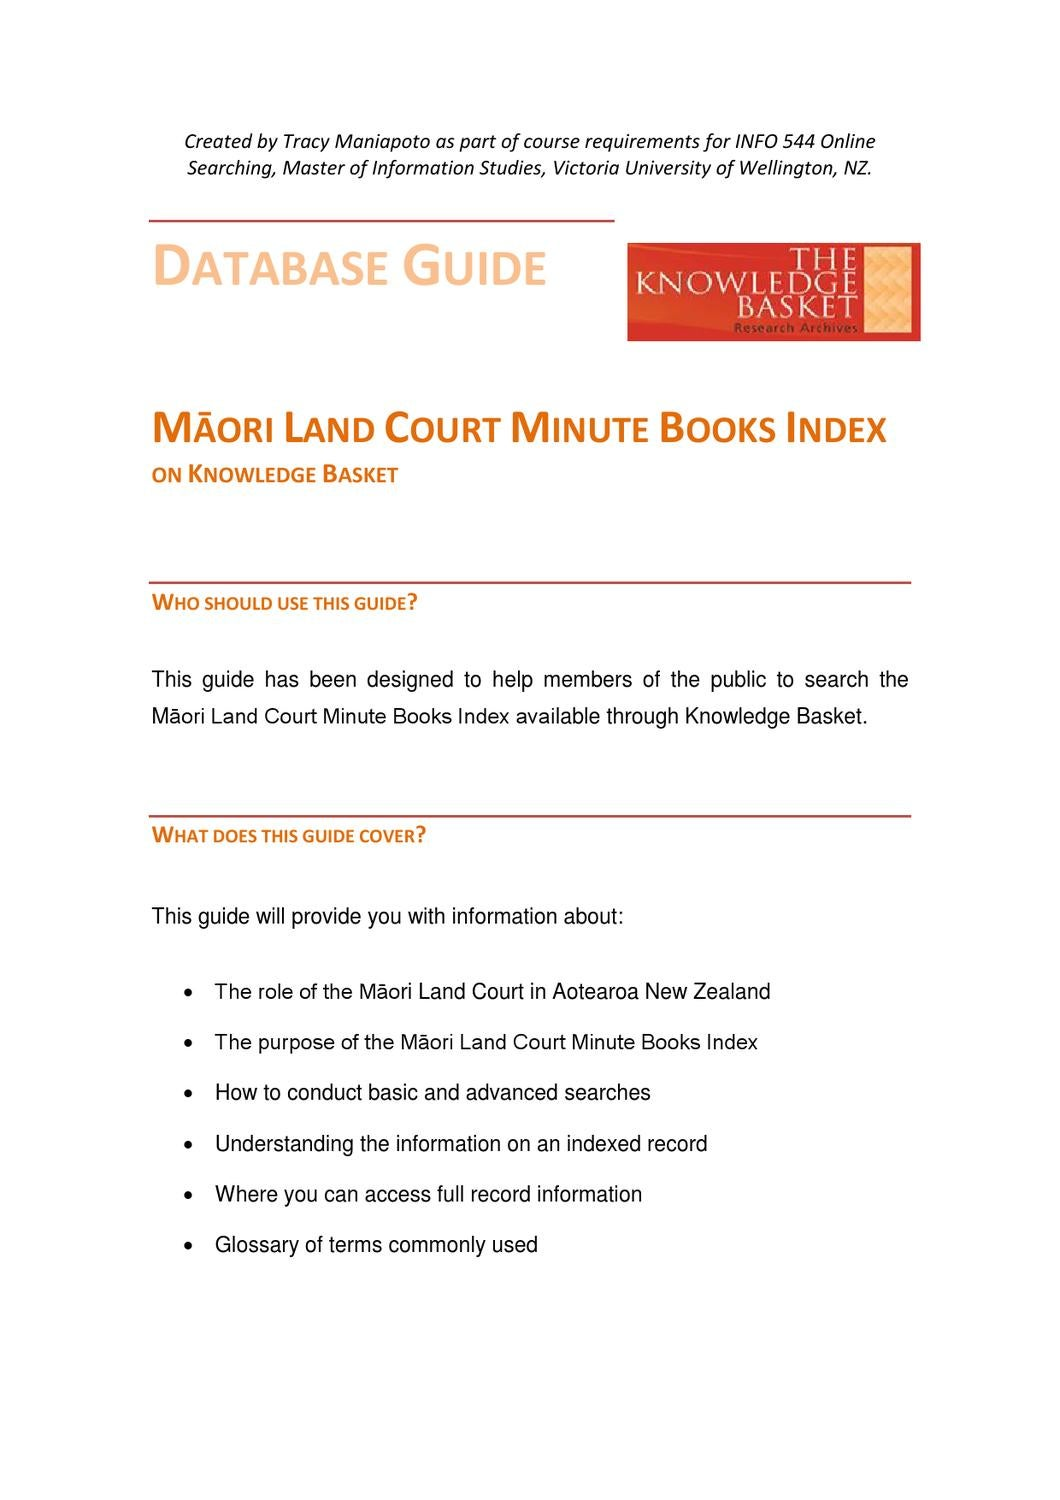 Database Guide for Māori Land Court Minute Book Index